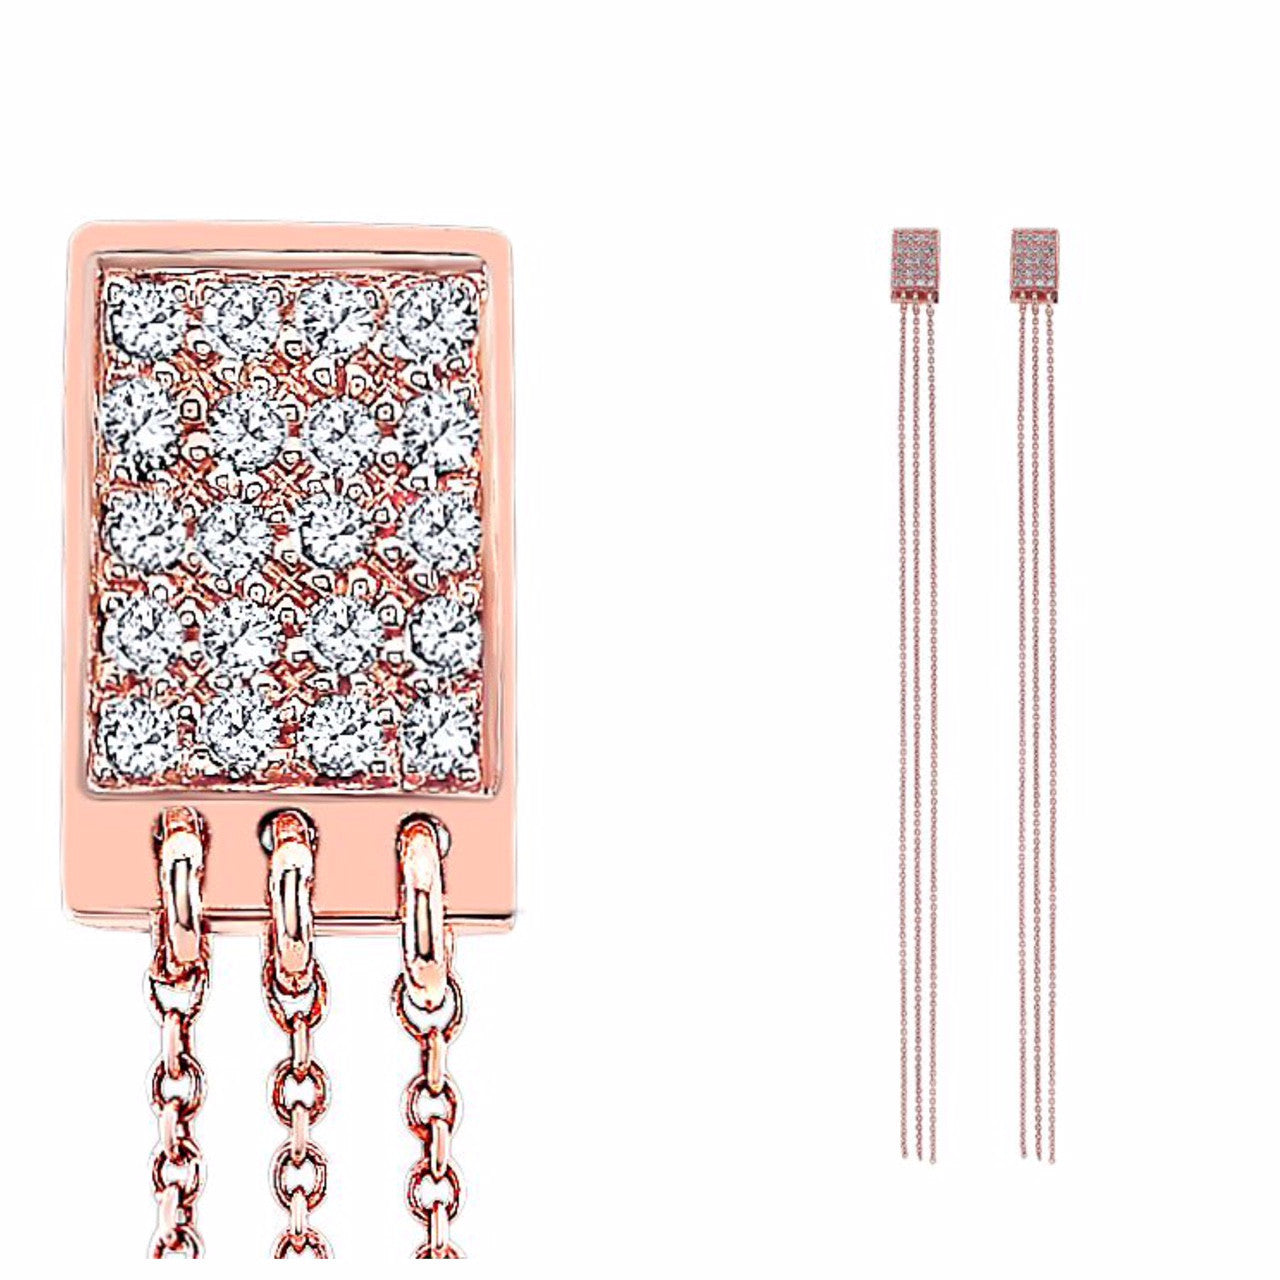 The Justine Diamond Earrings In Rose Gold